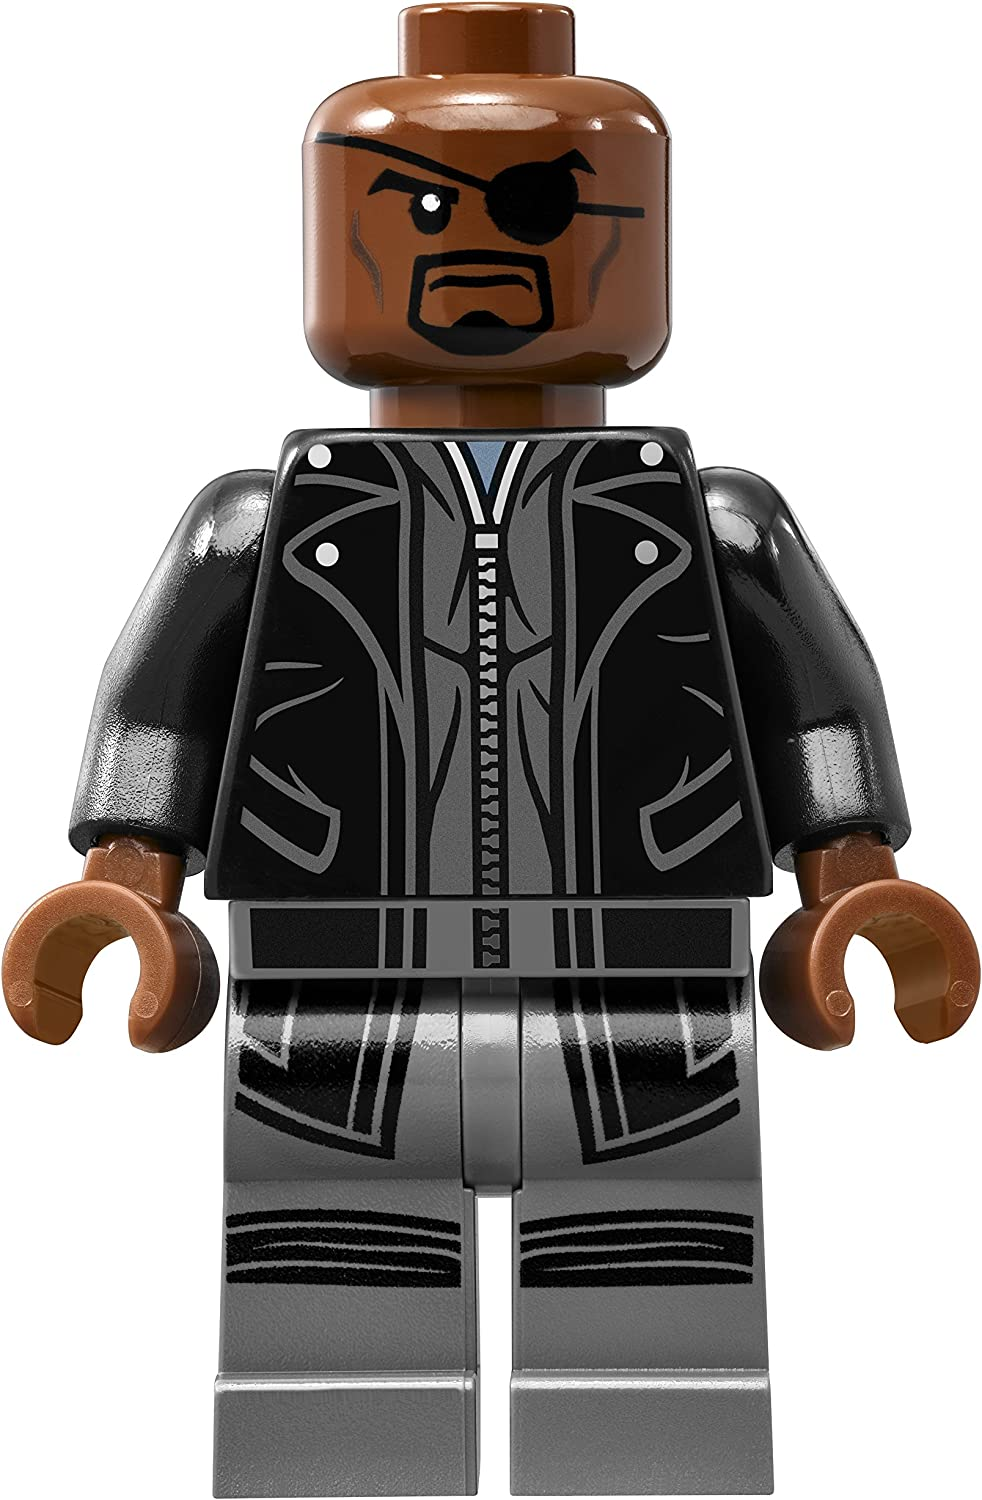 LEGO Marvel Super Heroes S.H.I.E.L.D. - Nick Fury in Black Suit (76042)